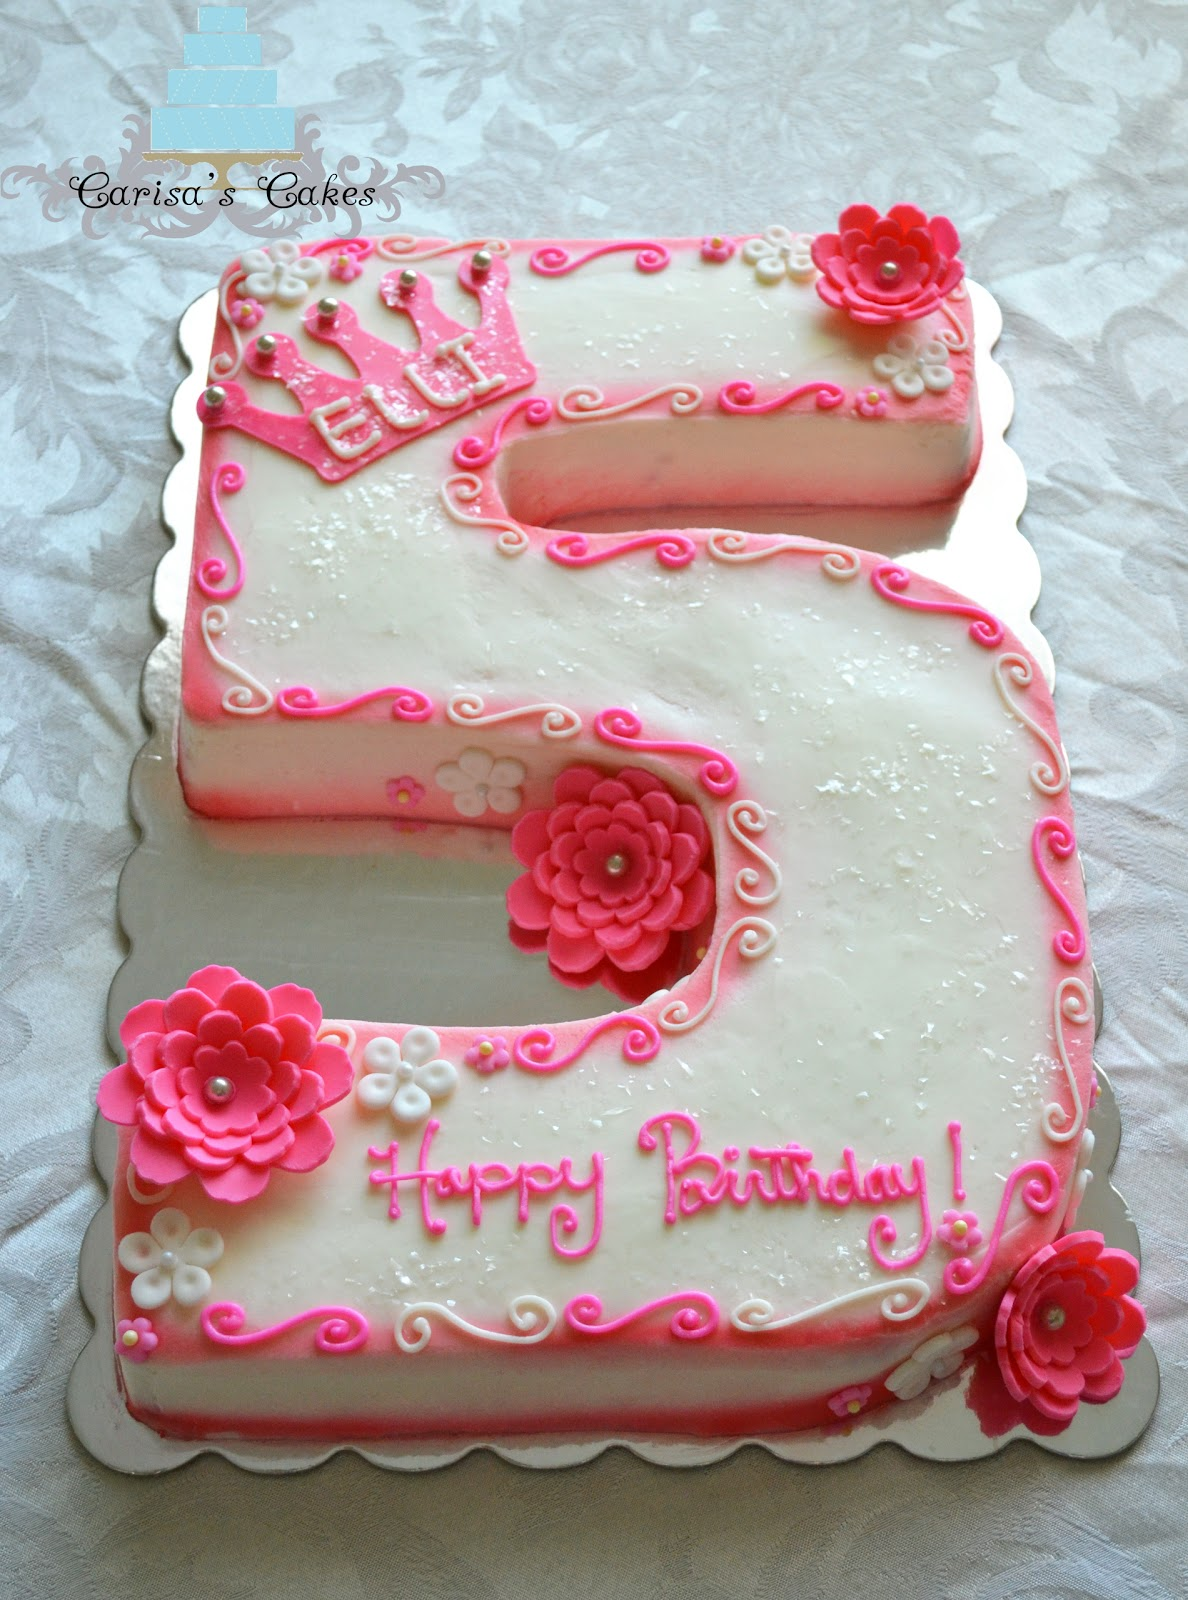 Carisa s Cakes: 5 Shaped Birthday Cake